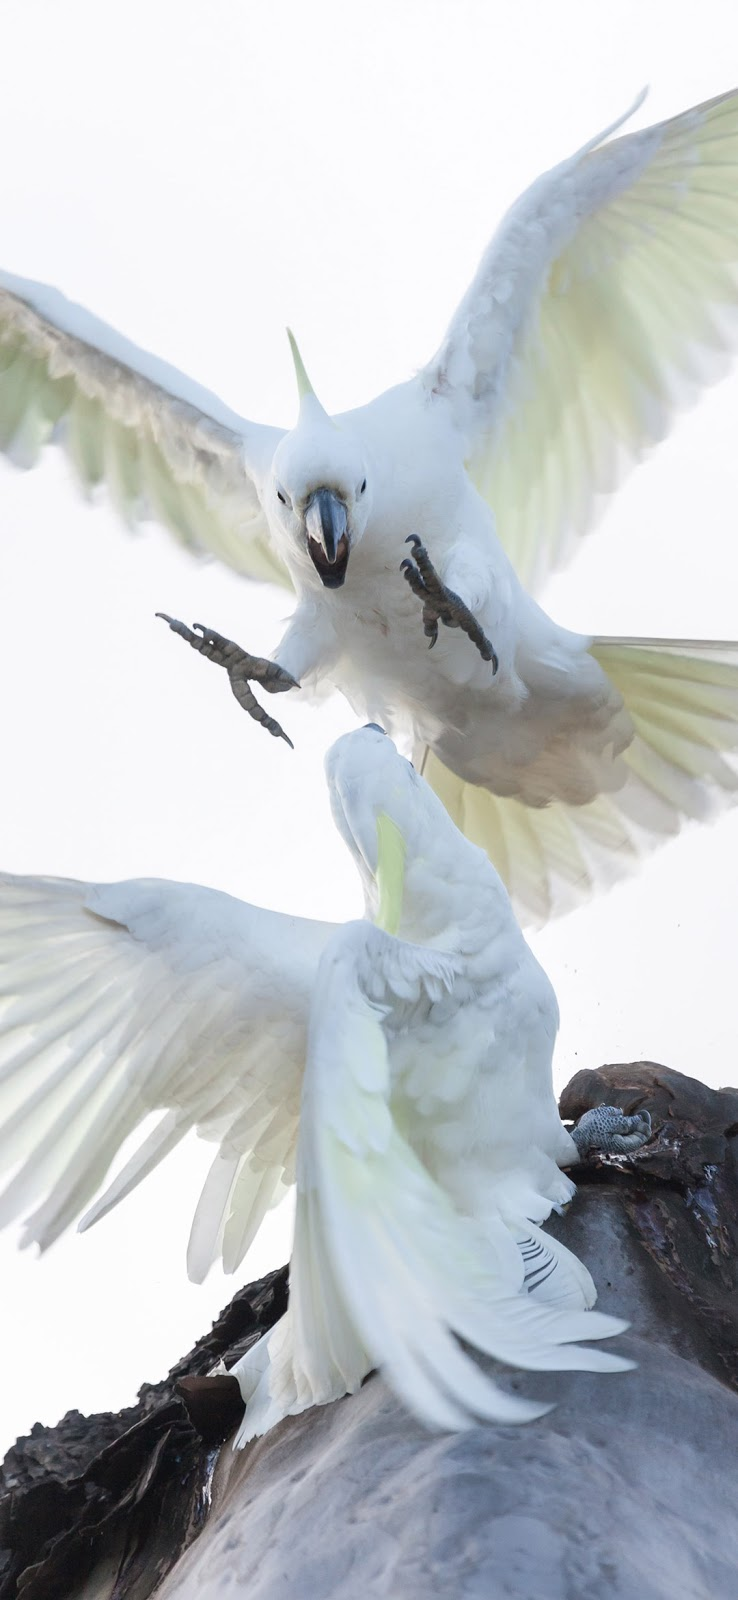 white cockatoo parrots fighting wallpaper